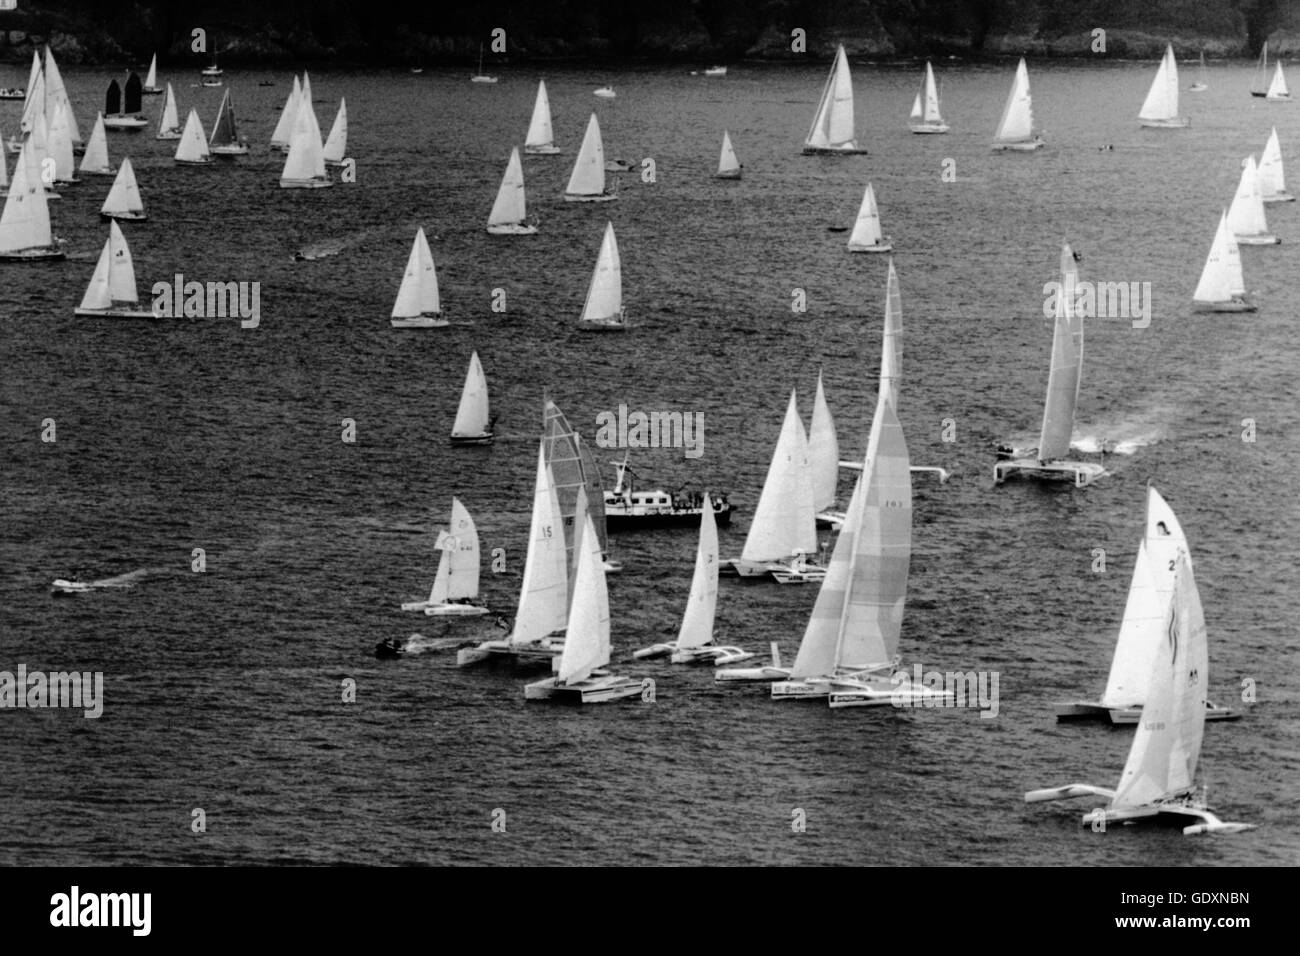 AJAXNETPHOTO. 5TH JUNE, 1988. PLYMOUTH, ENGLAND. - CARLSBERG RACE 1988 - FLEET AT THE START - 90 BOATS IN TOTAL - Stock Image